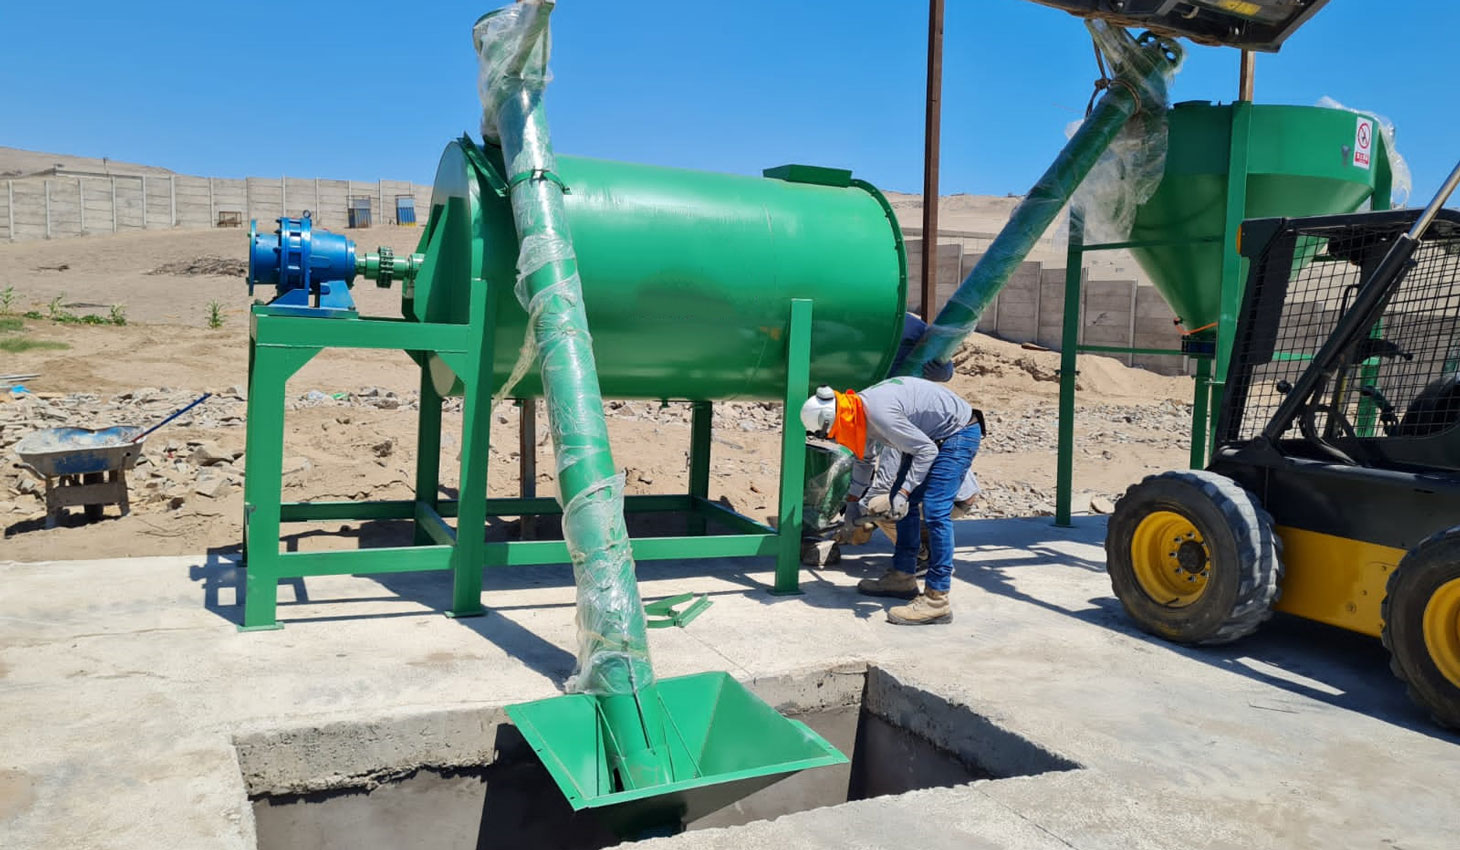 2 ton wall putty plant installed in Zambia